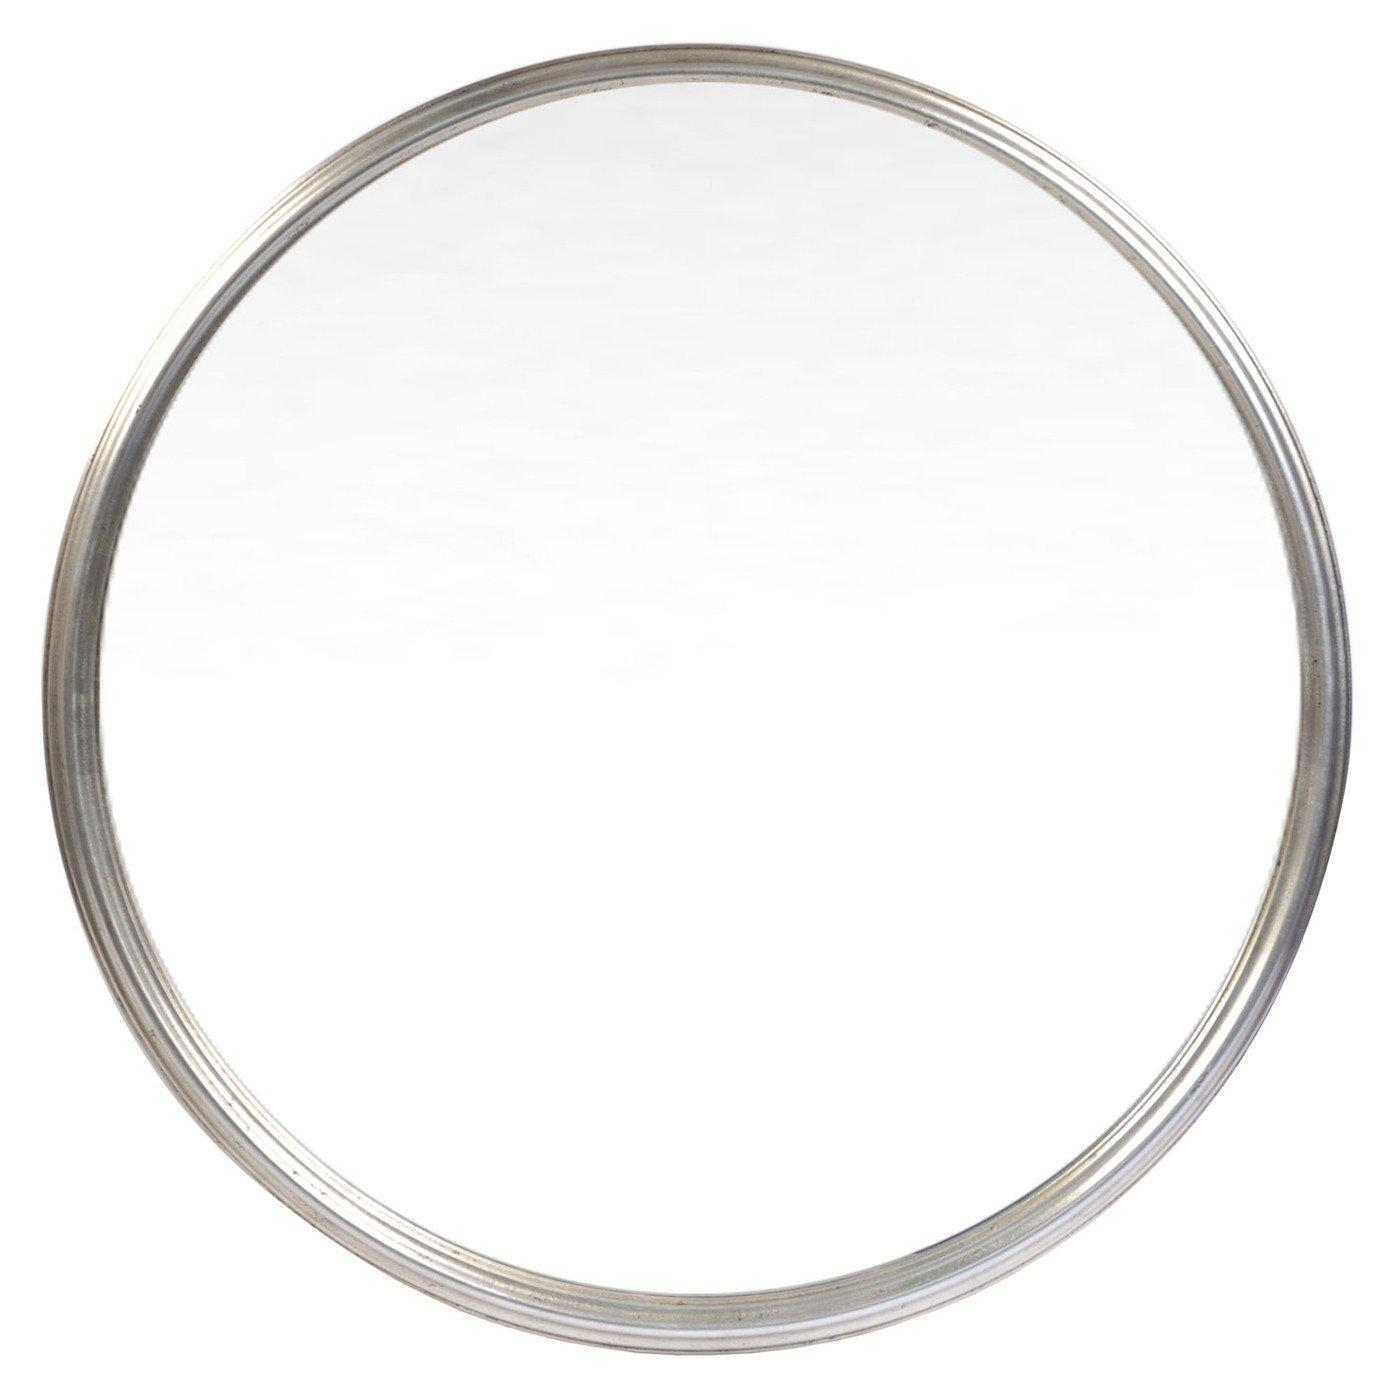 Modern Contemporary Mirrors | Heal's Inside Designer Round Mirrors (Image 14 of 20)